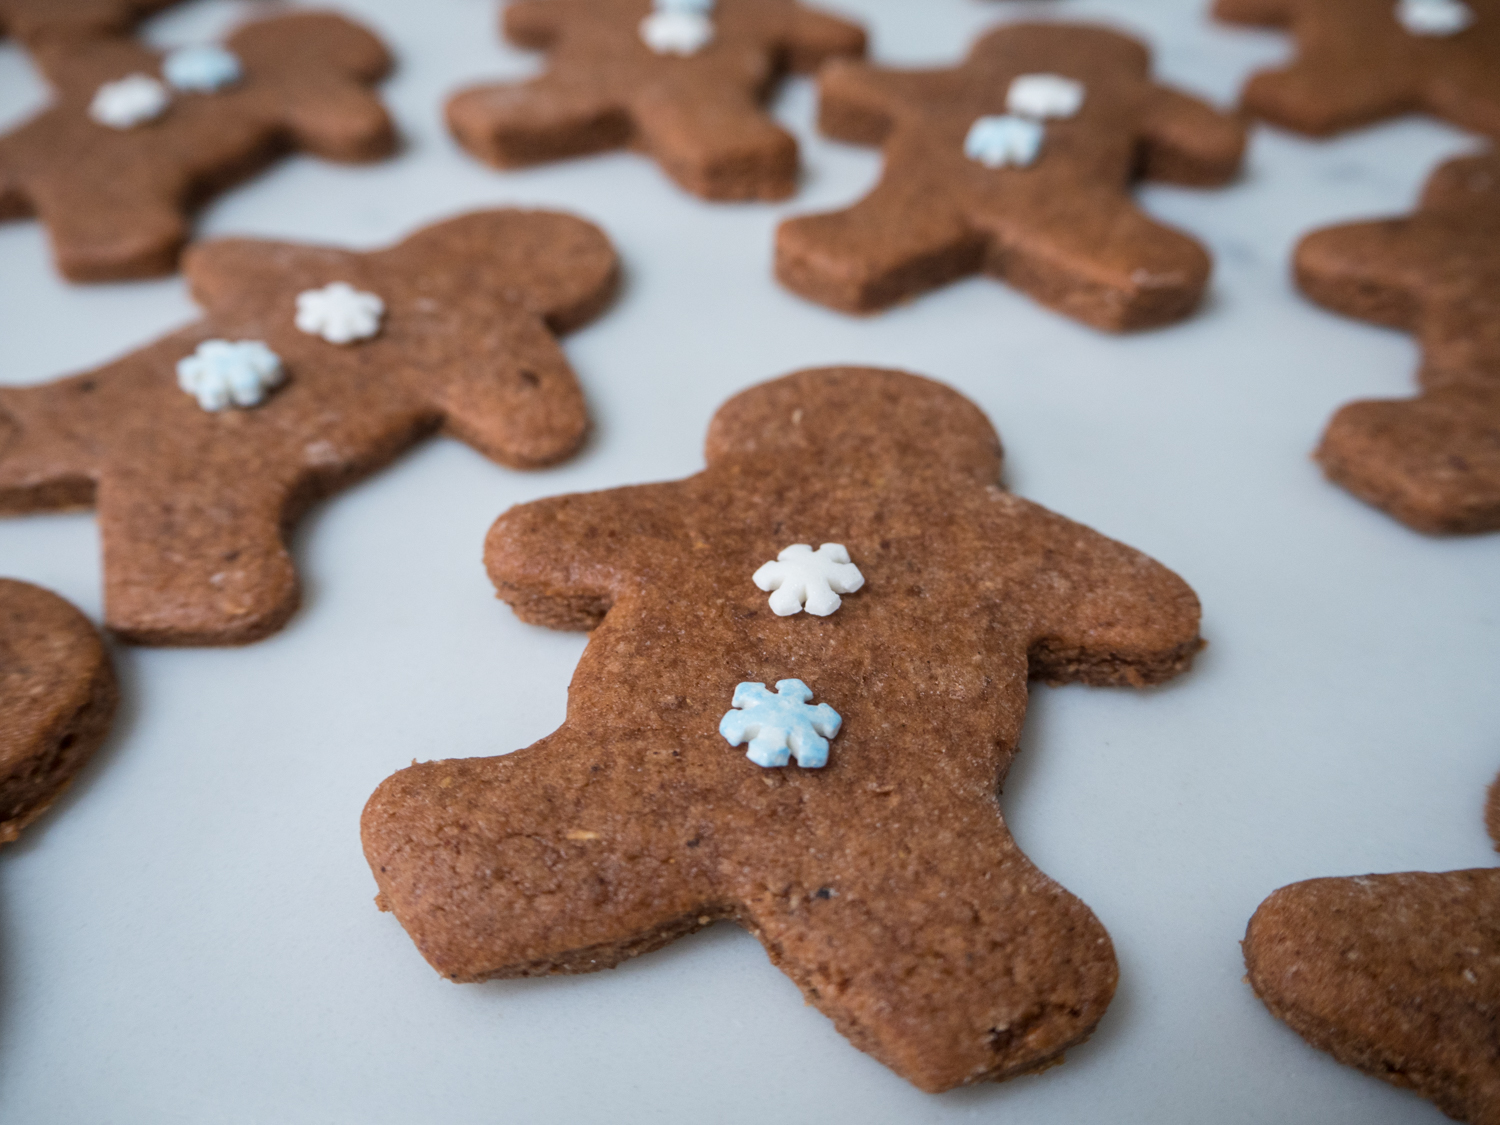 gingerbread men-270037.jpg